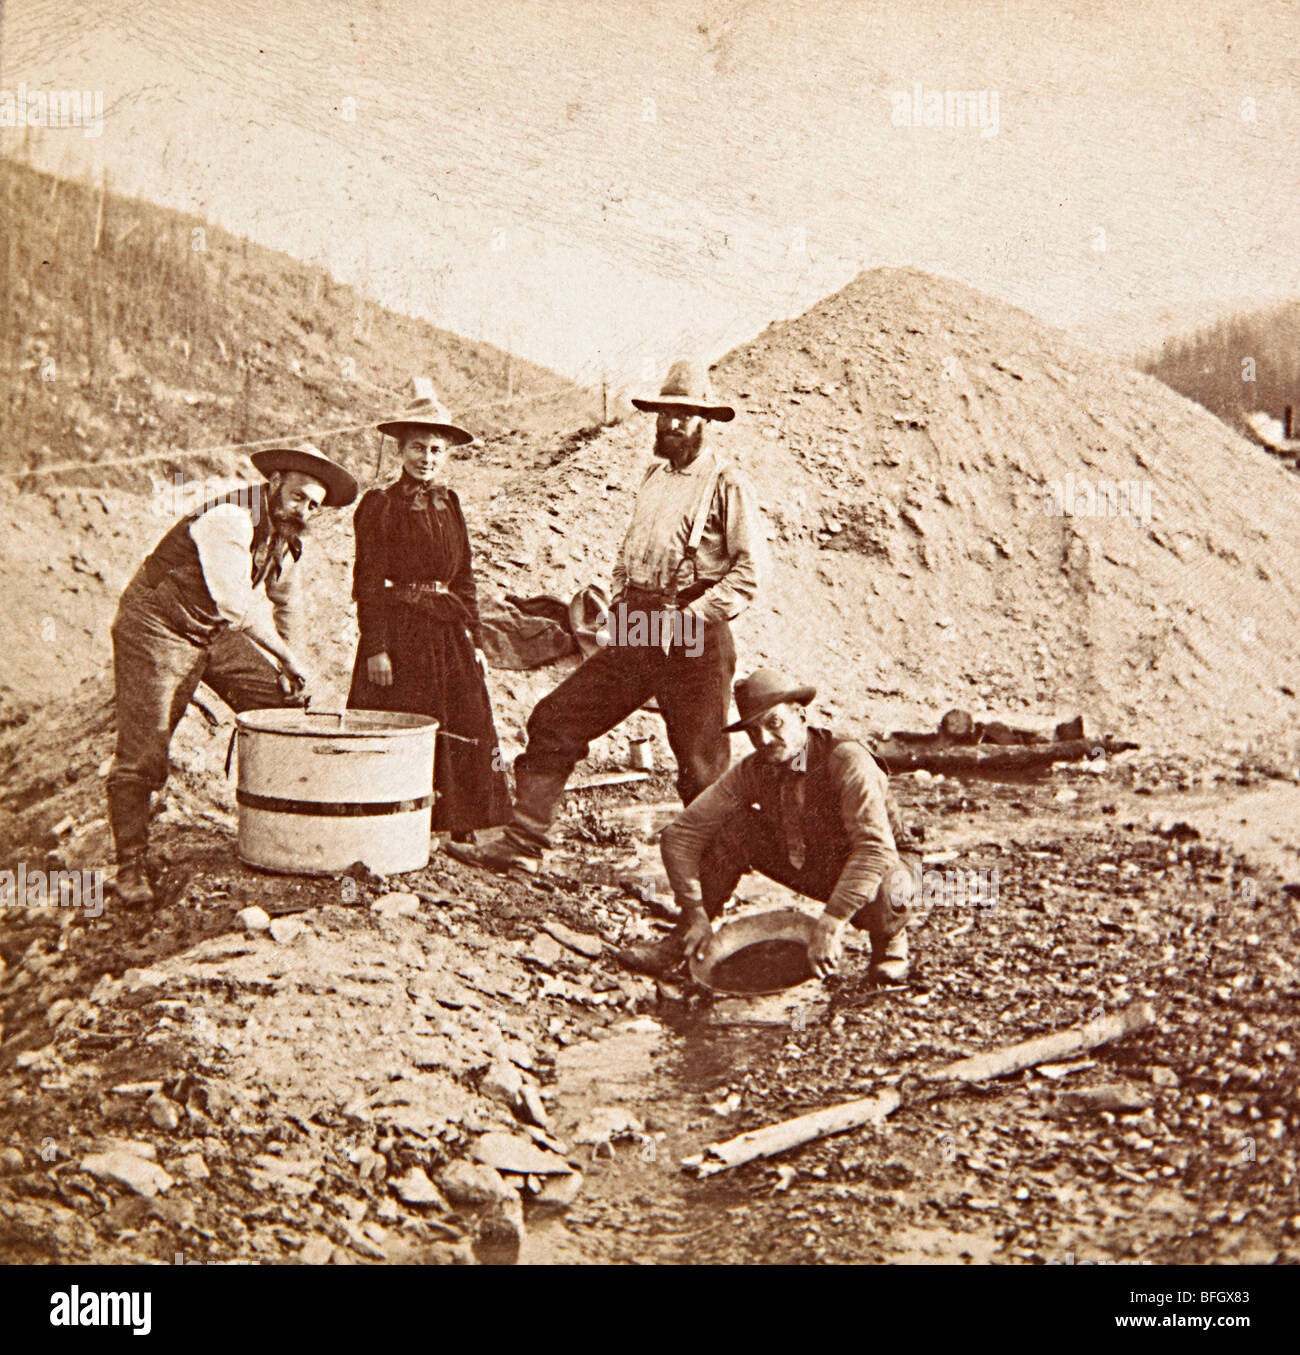 Original photograph of one woman and three men panning for gold in the Klondike in 1899 Alaska USA - Stock Image